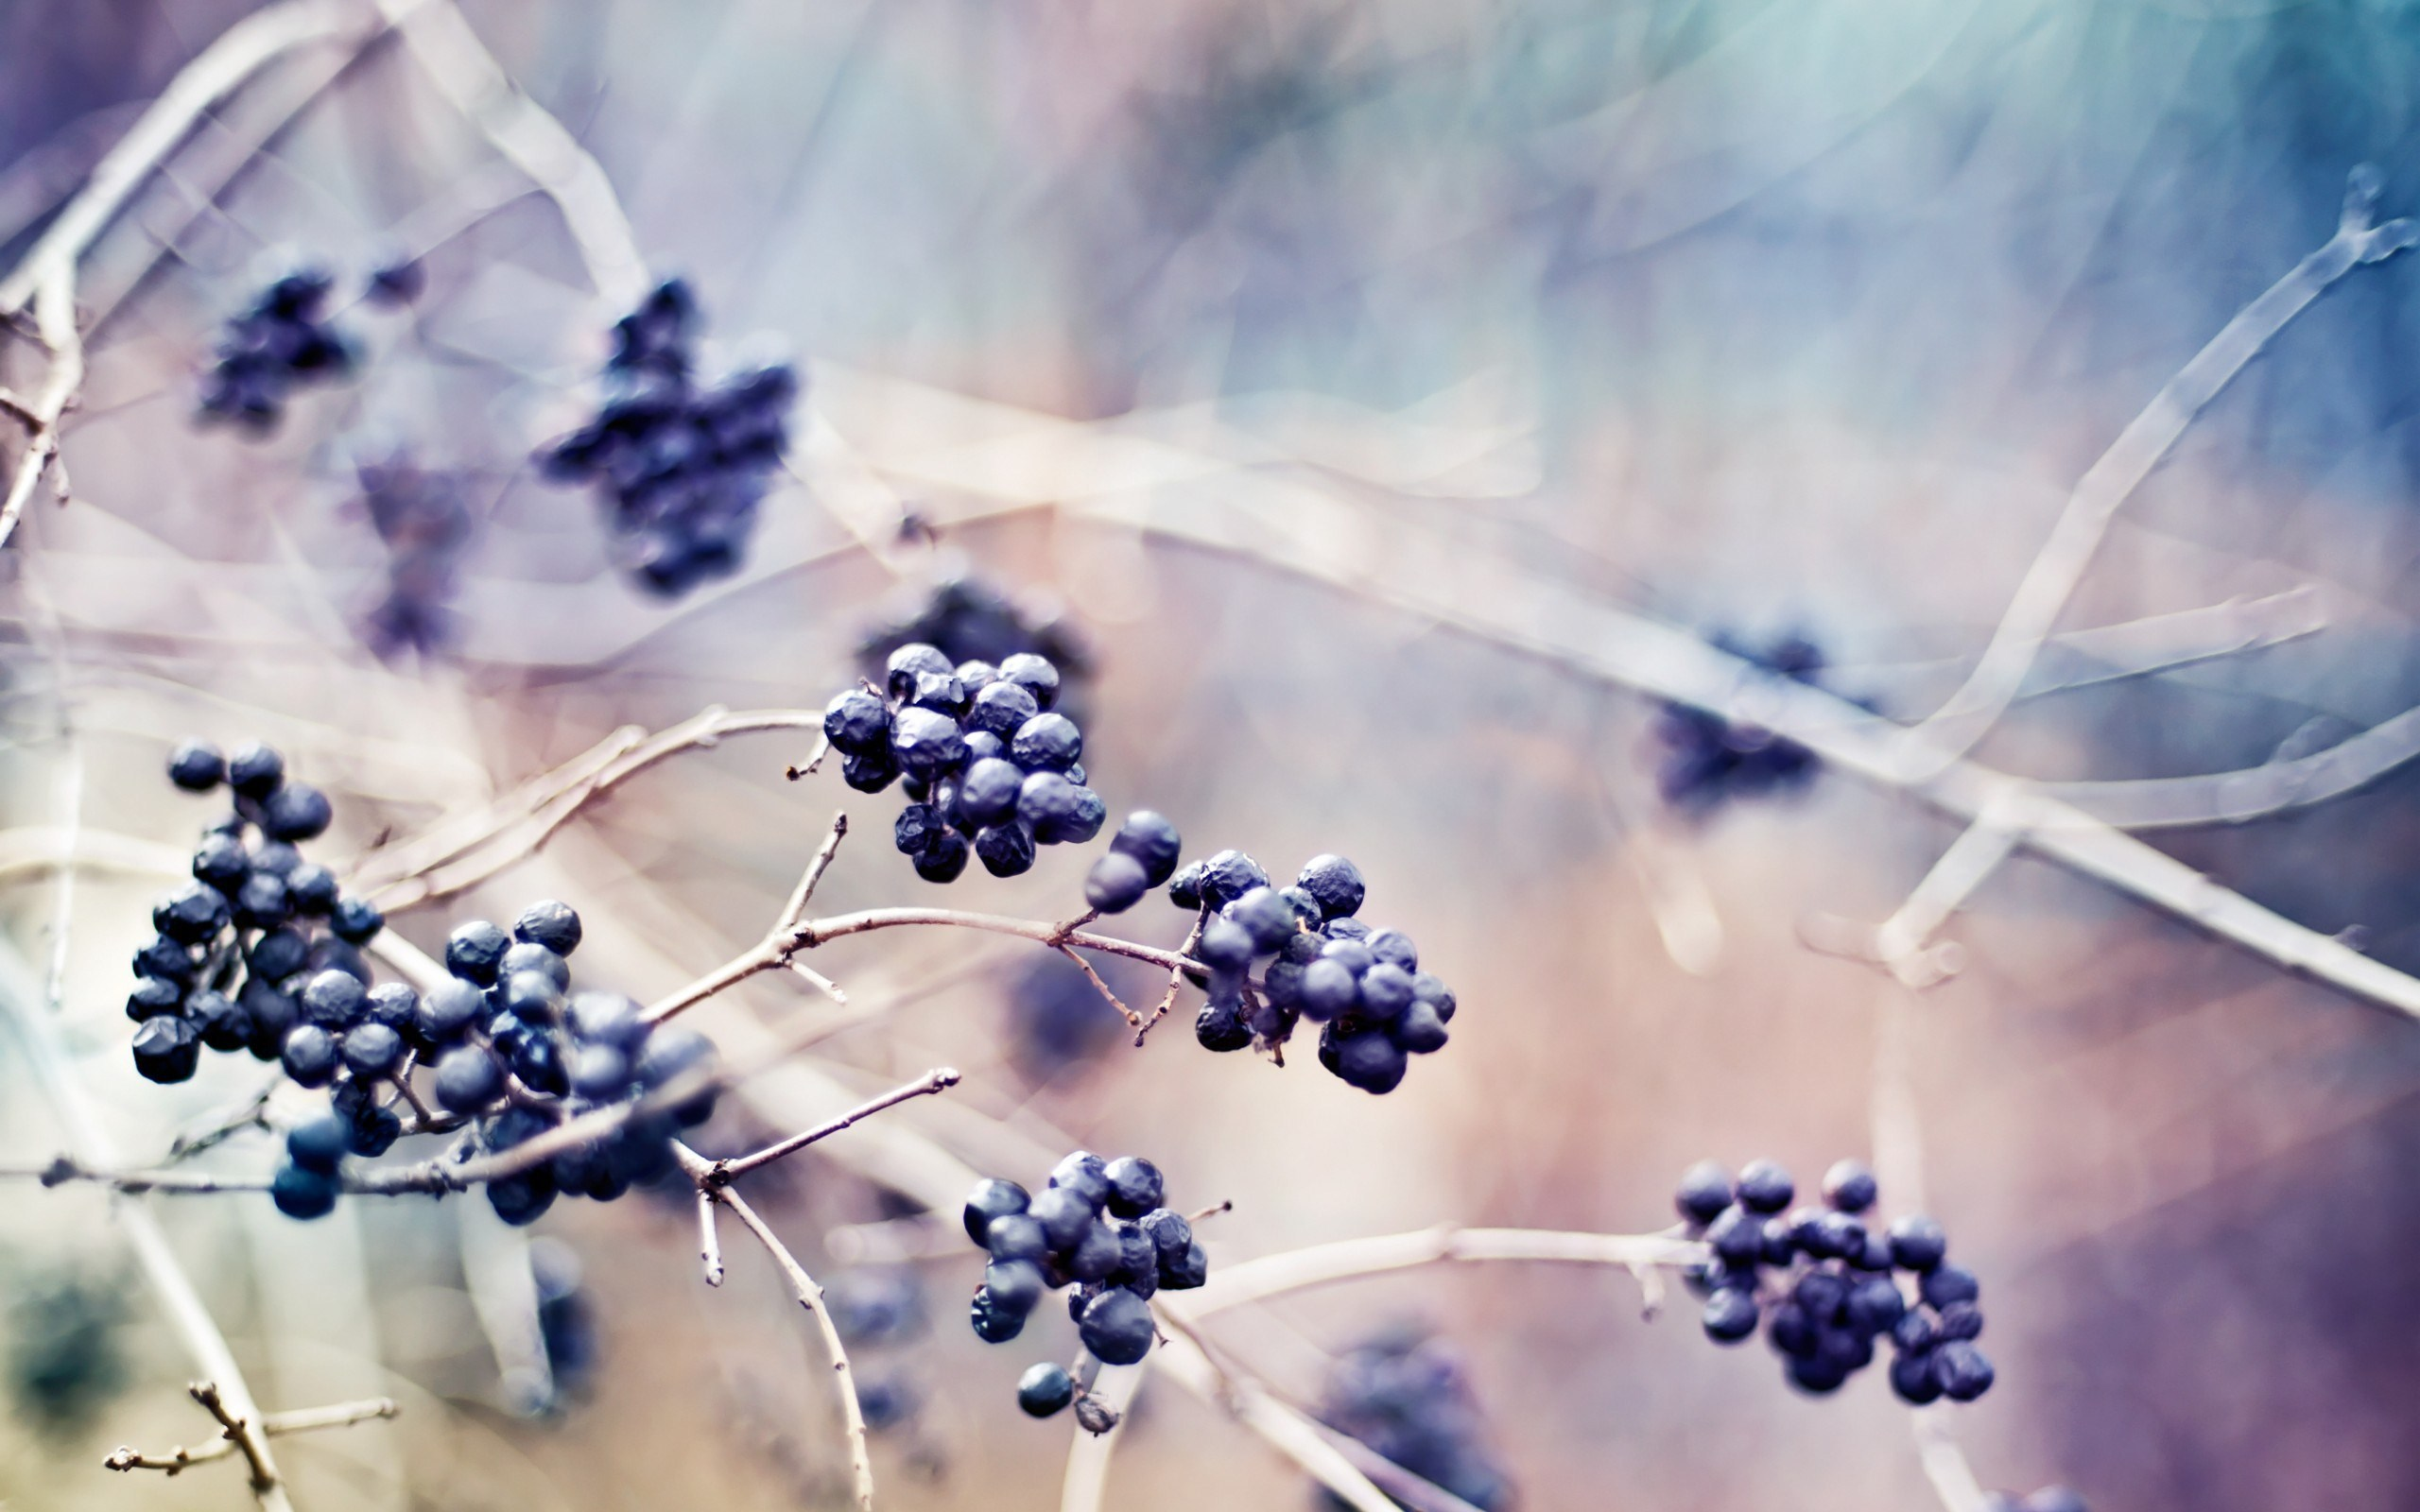 Berries Plants Branches Nature Macro Photo